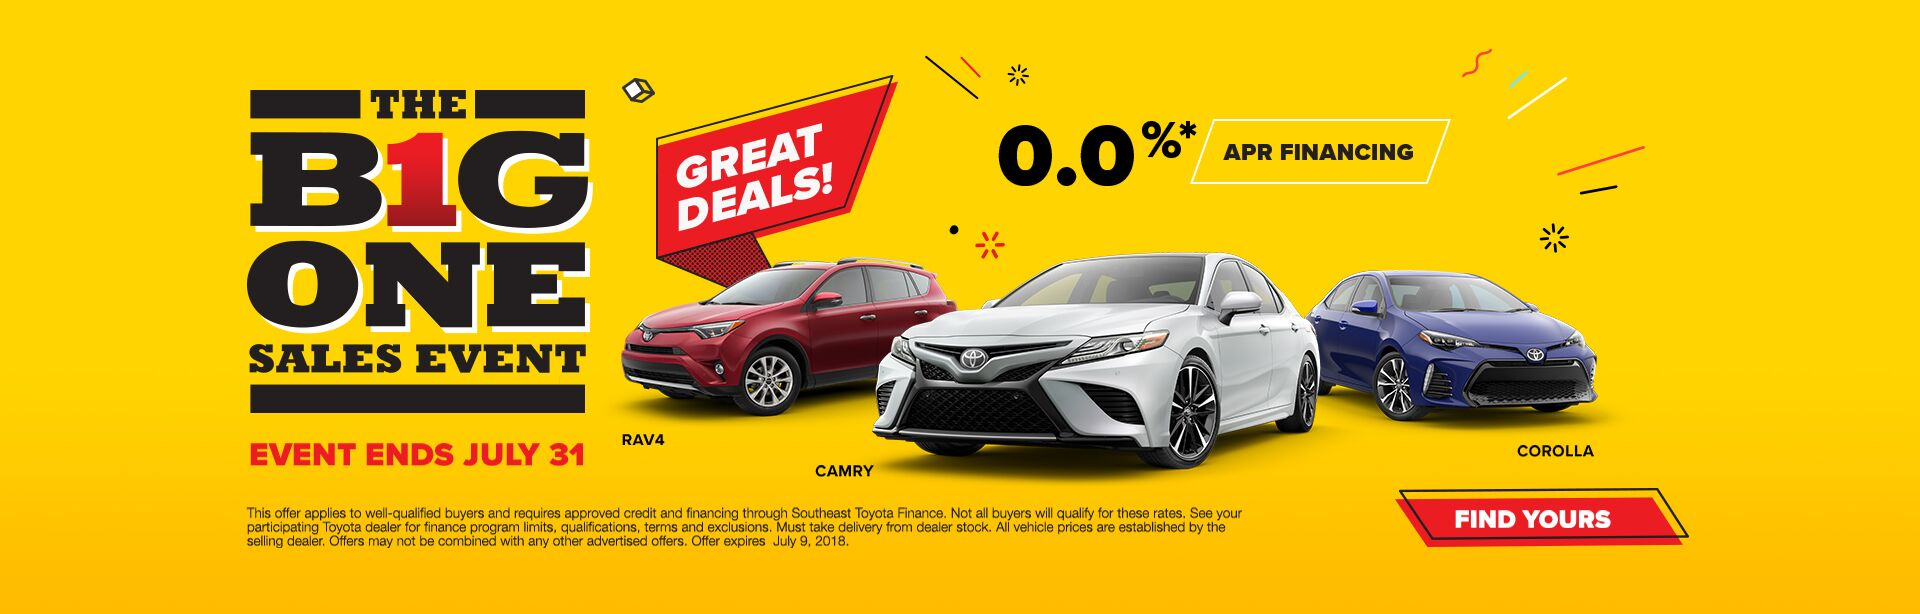 The Big One Sales Event July